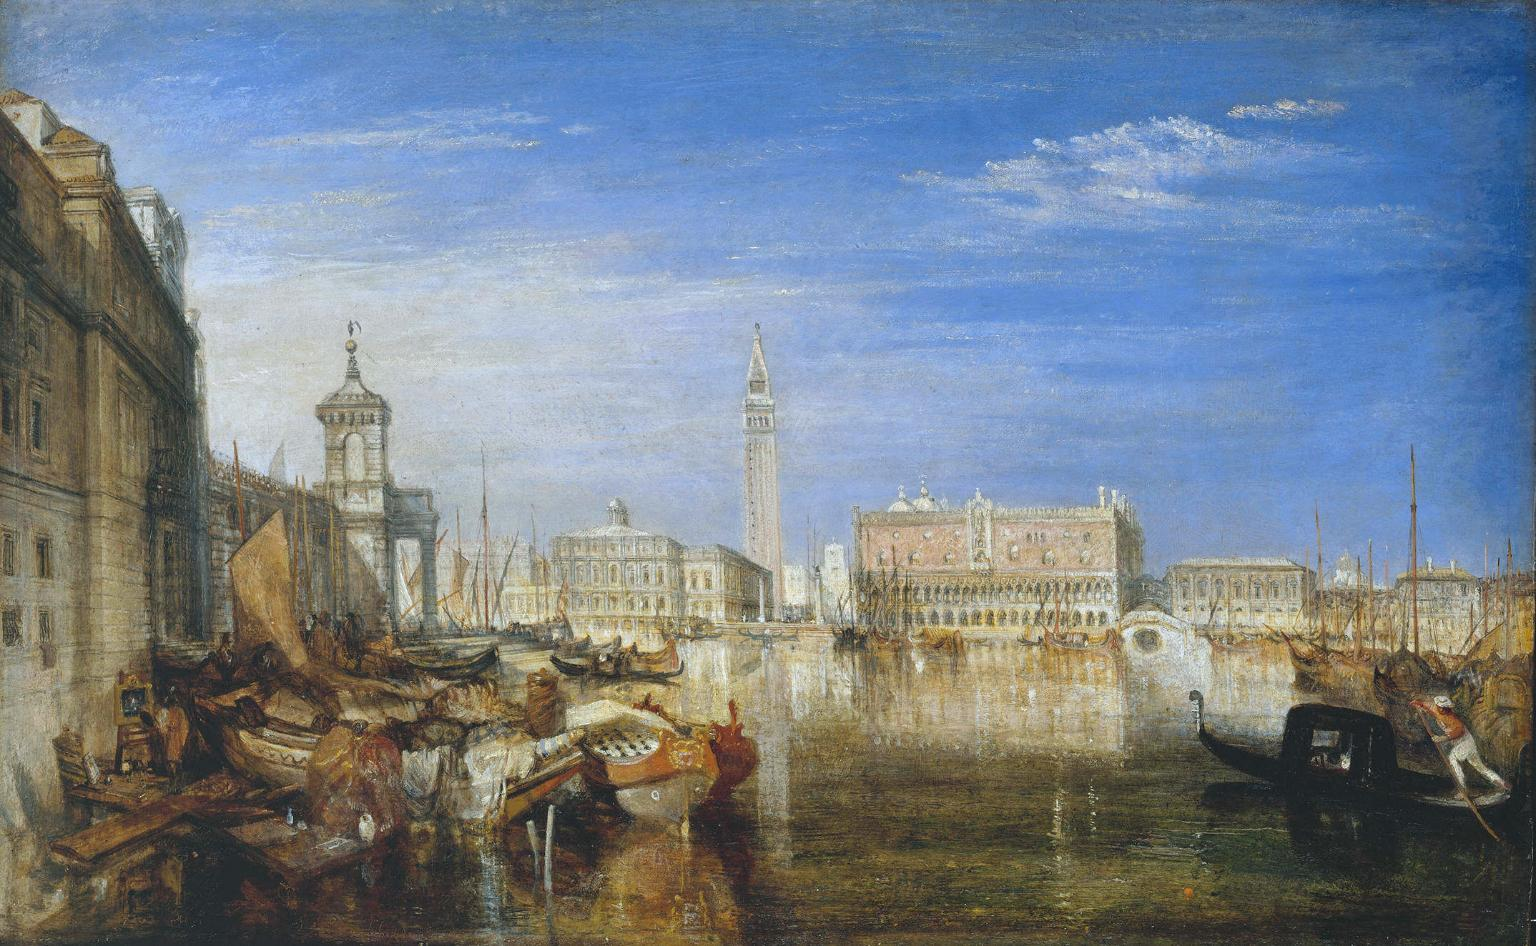 Bridge of Sighs, Ducal Palace and Custom House, Venice Canaletti Painting 1833